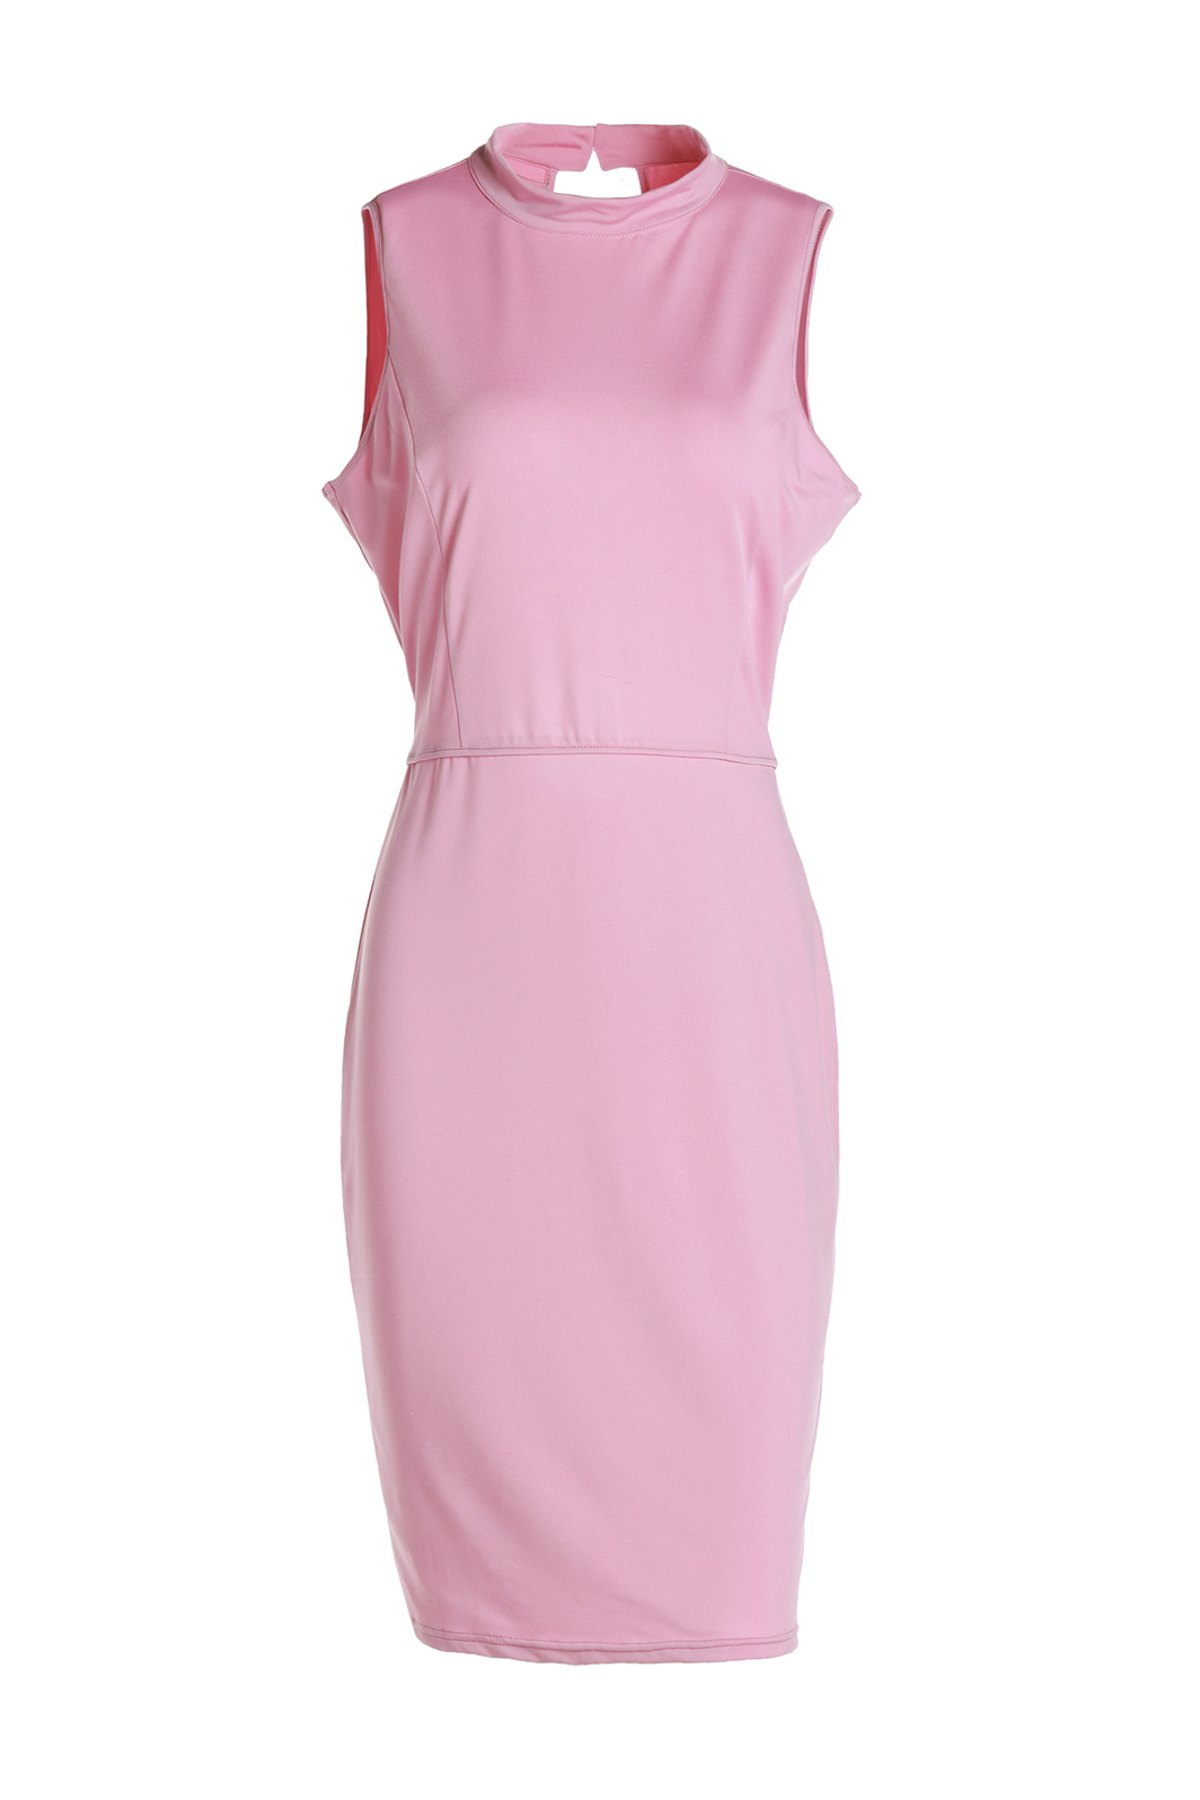 Graceful Sleeveless Stand Collar Hollow Out Pink Women's Bodycon Dress